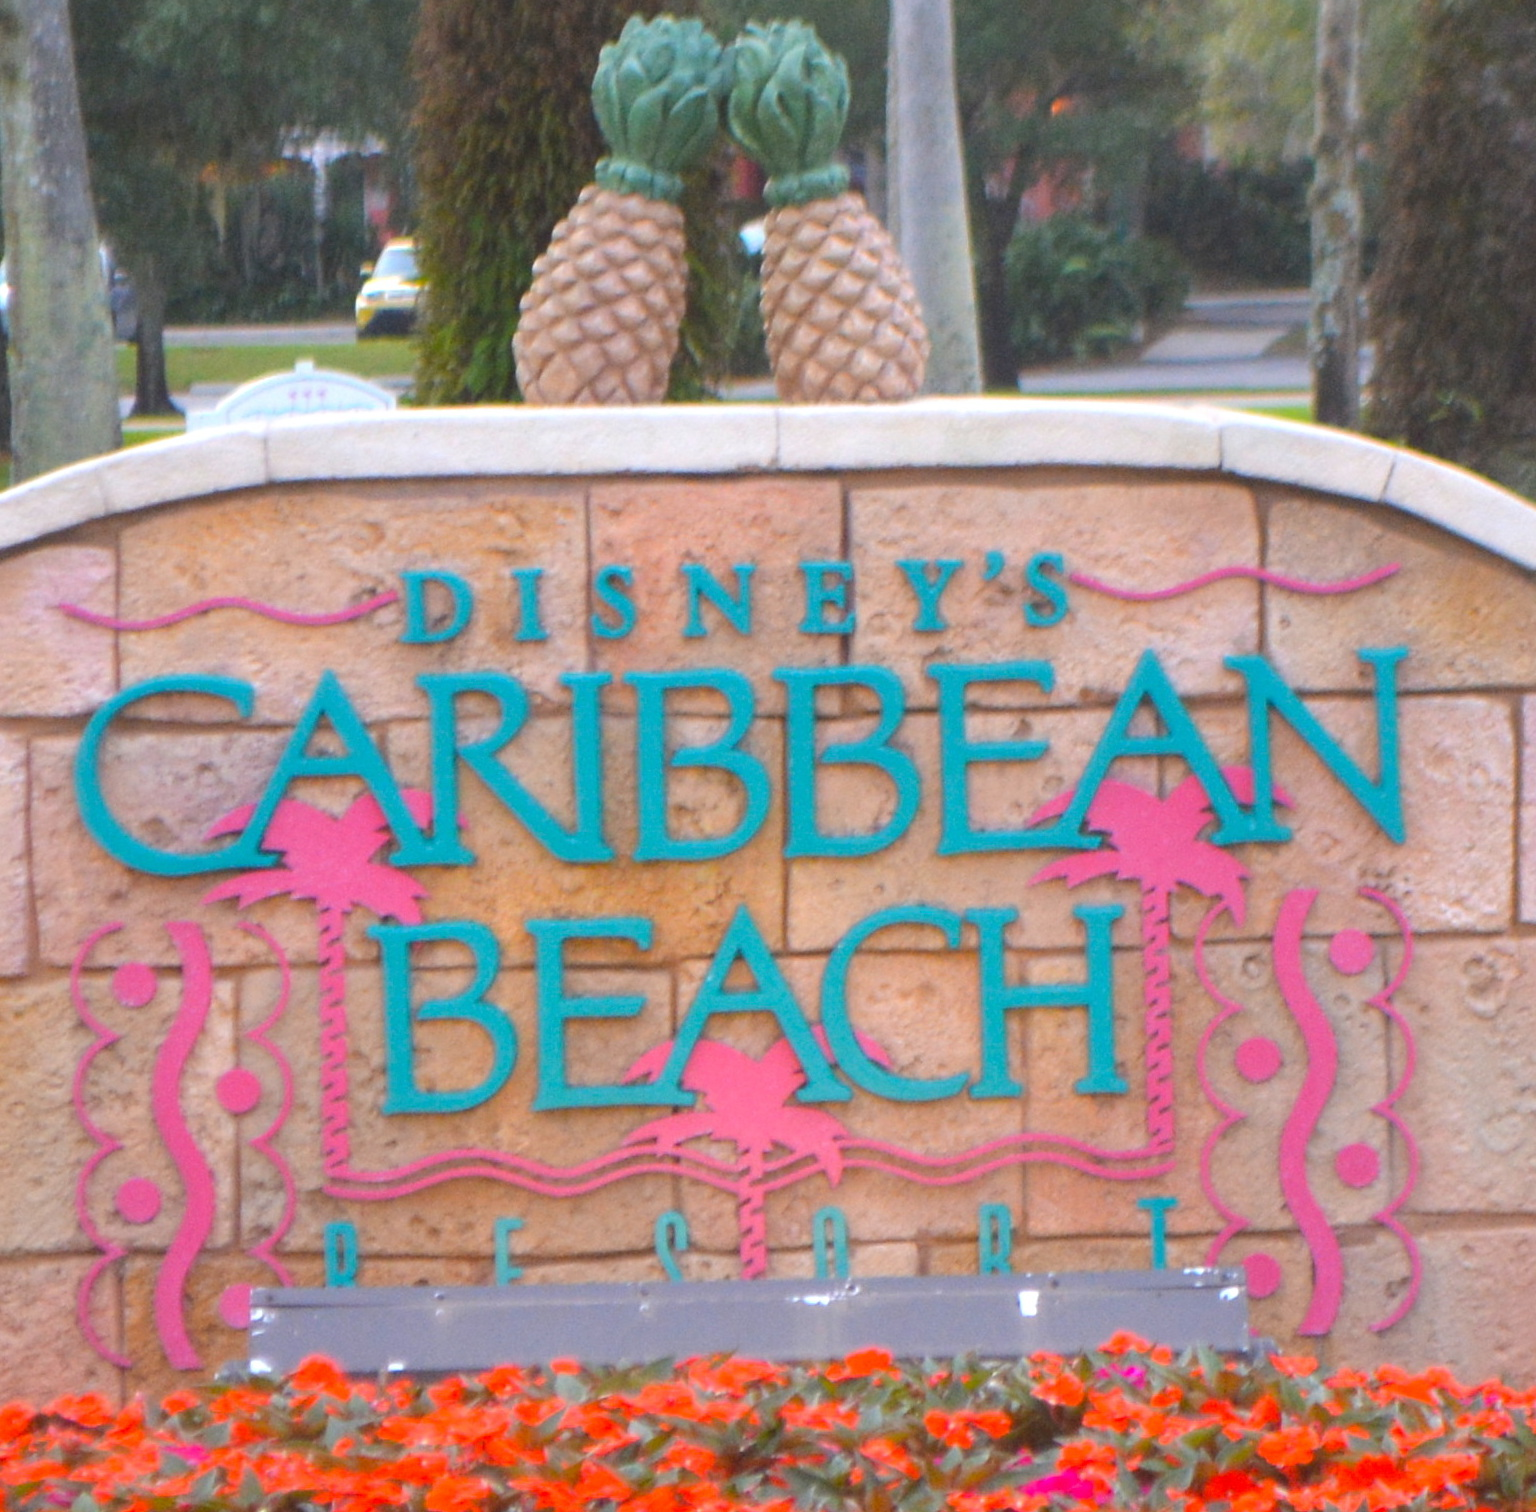 TRANSFORMATION DETAILS REVEALED FOR DISNEY'S CARIBBEAN BEACH RESORT